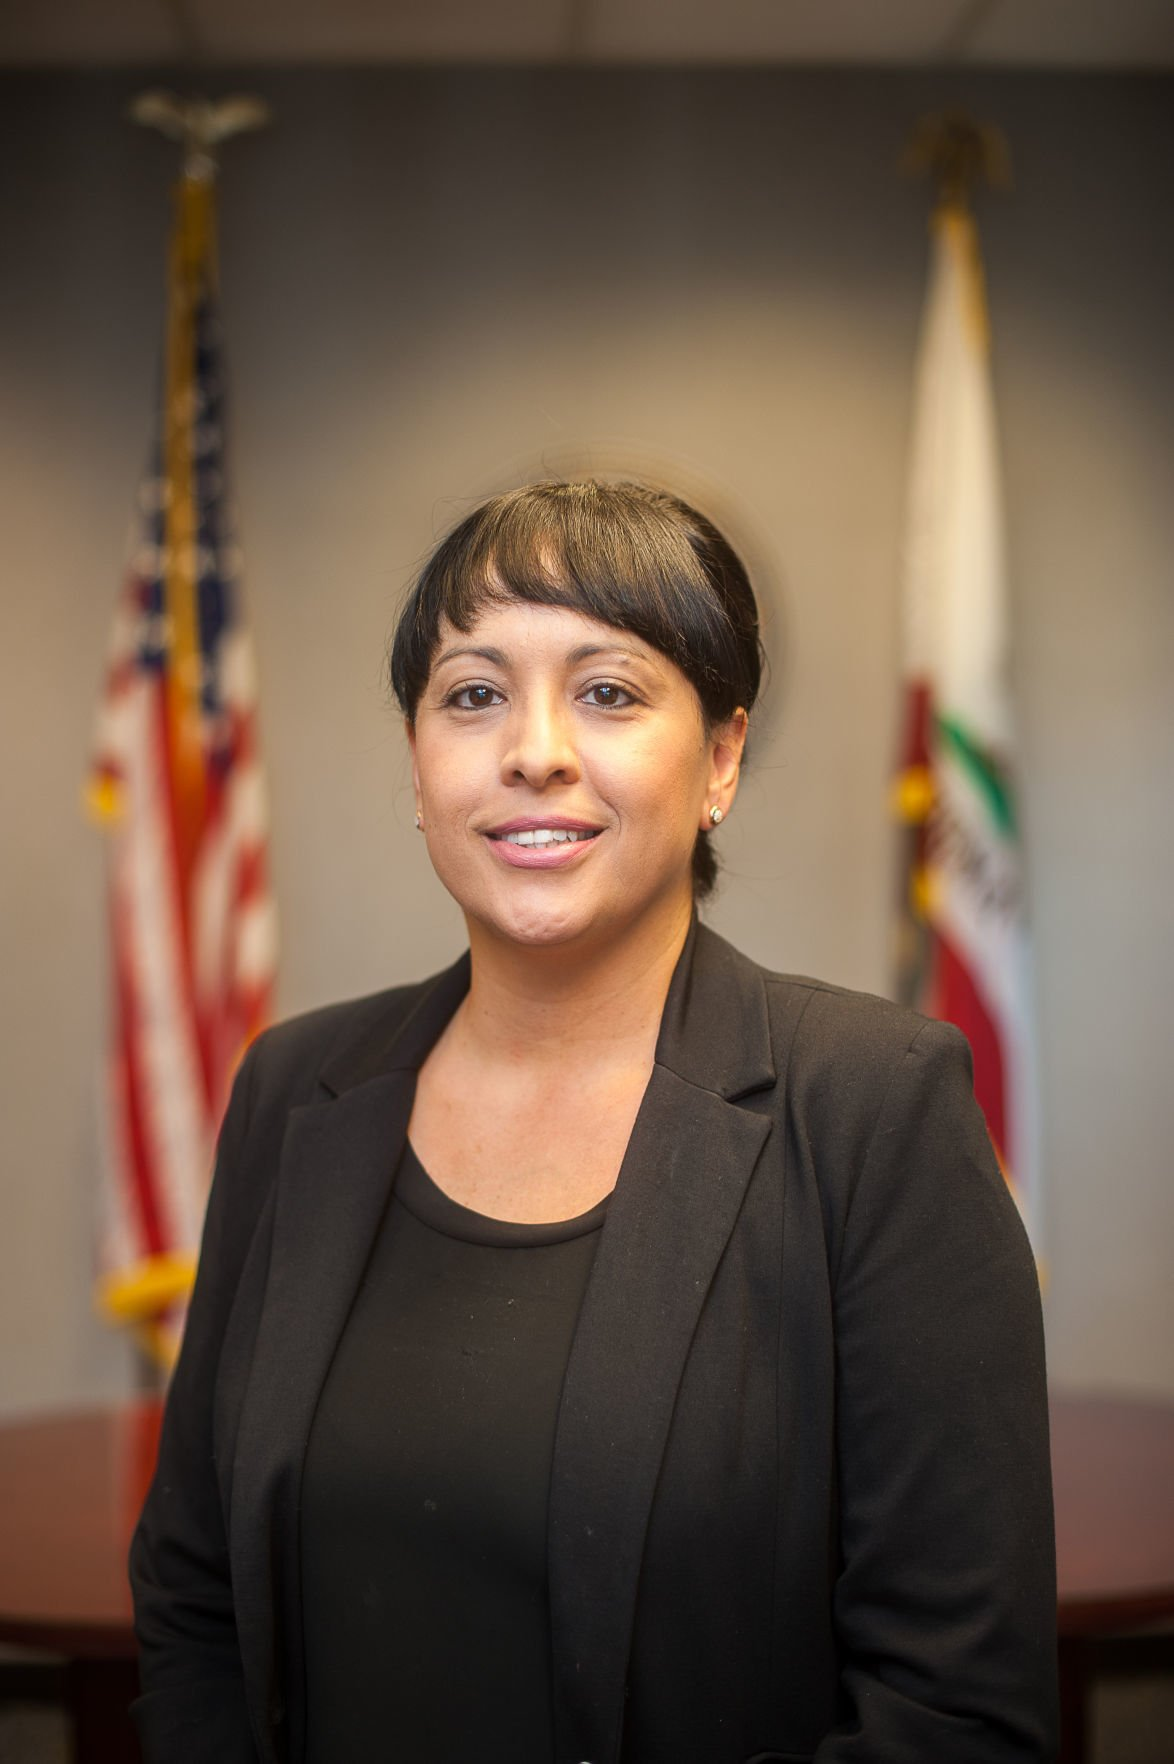 Supervisor Leticia Perez criminally charged in connection with conflict of interest with marijuana industry